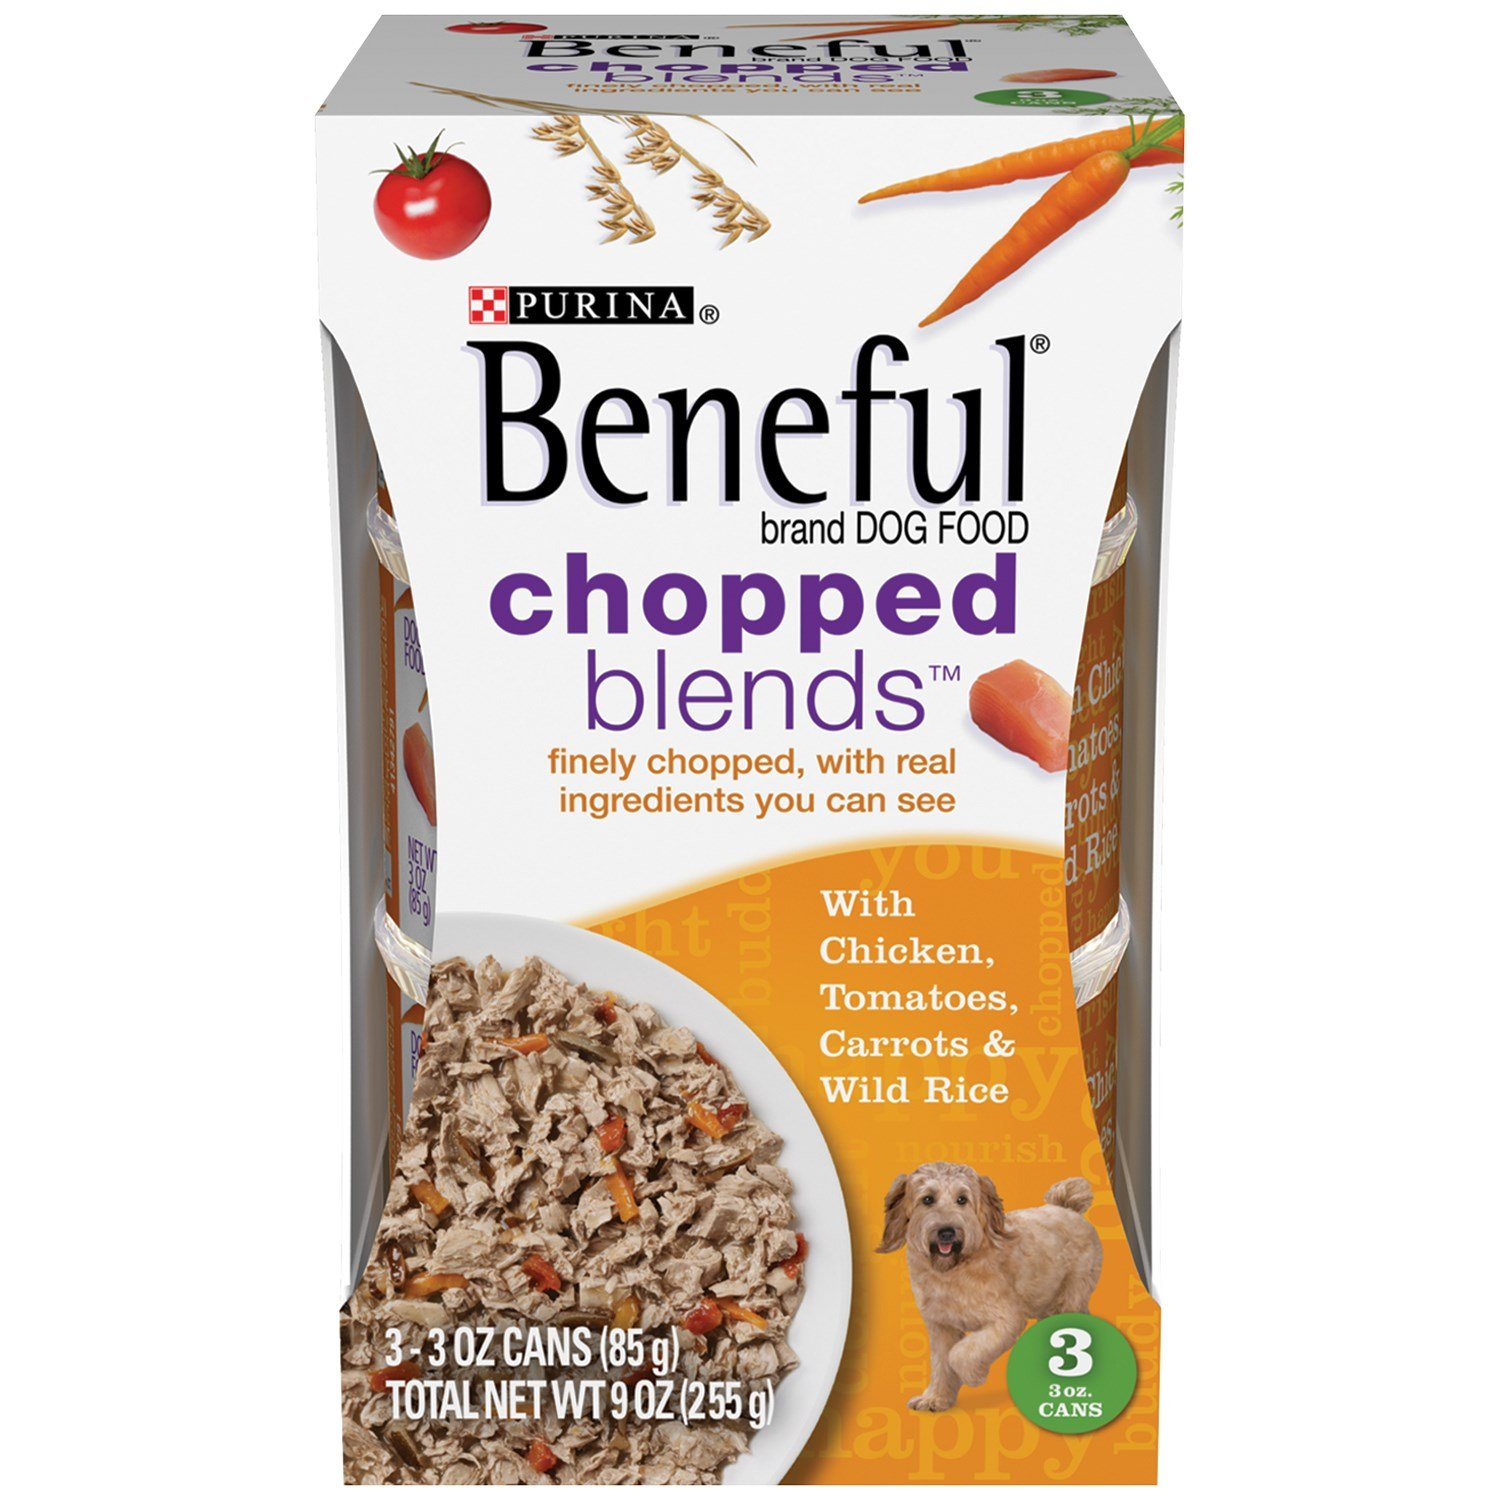 Beneful Dog Food 9 OZ (Pack of 24) by Beneful Wet